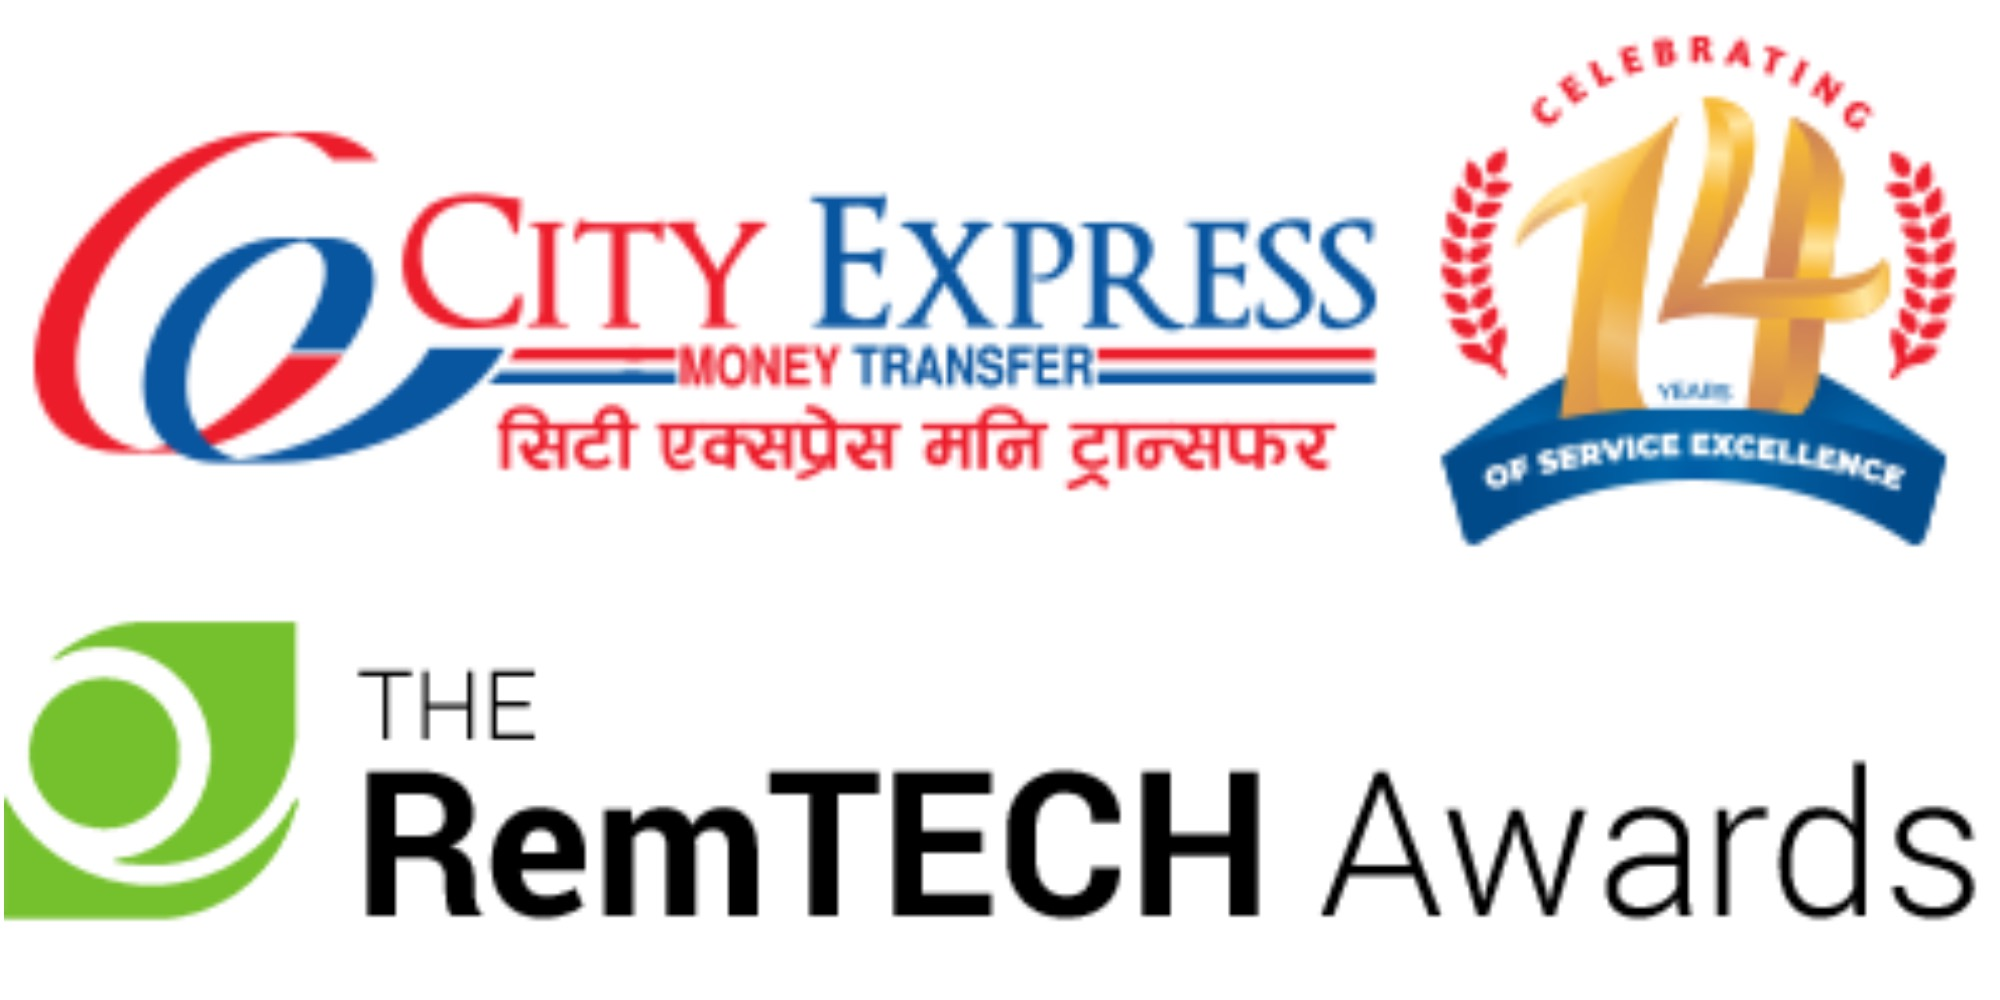 City Express wins Remtech Award